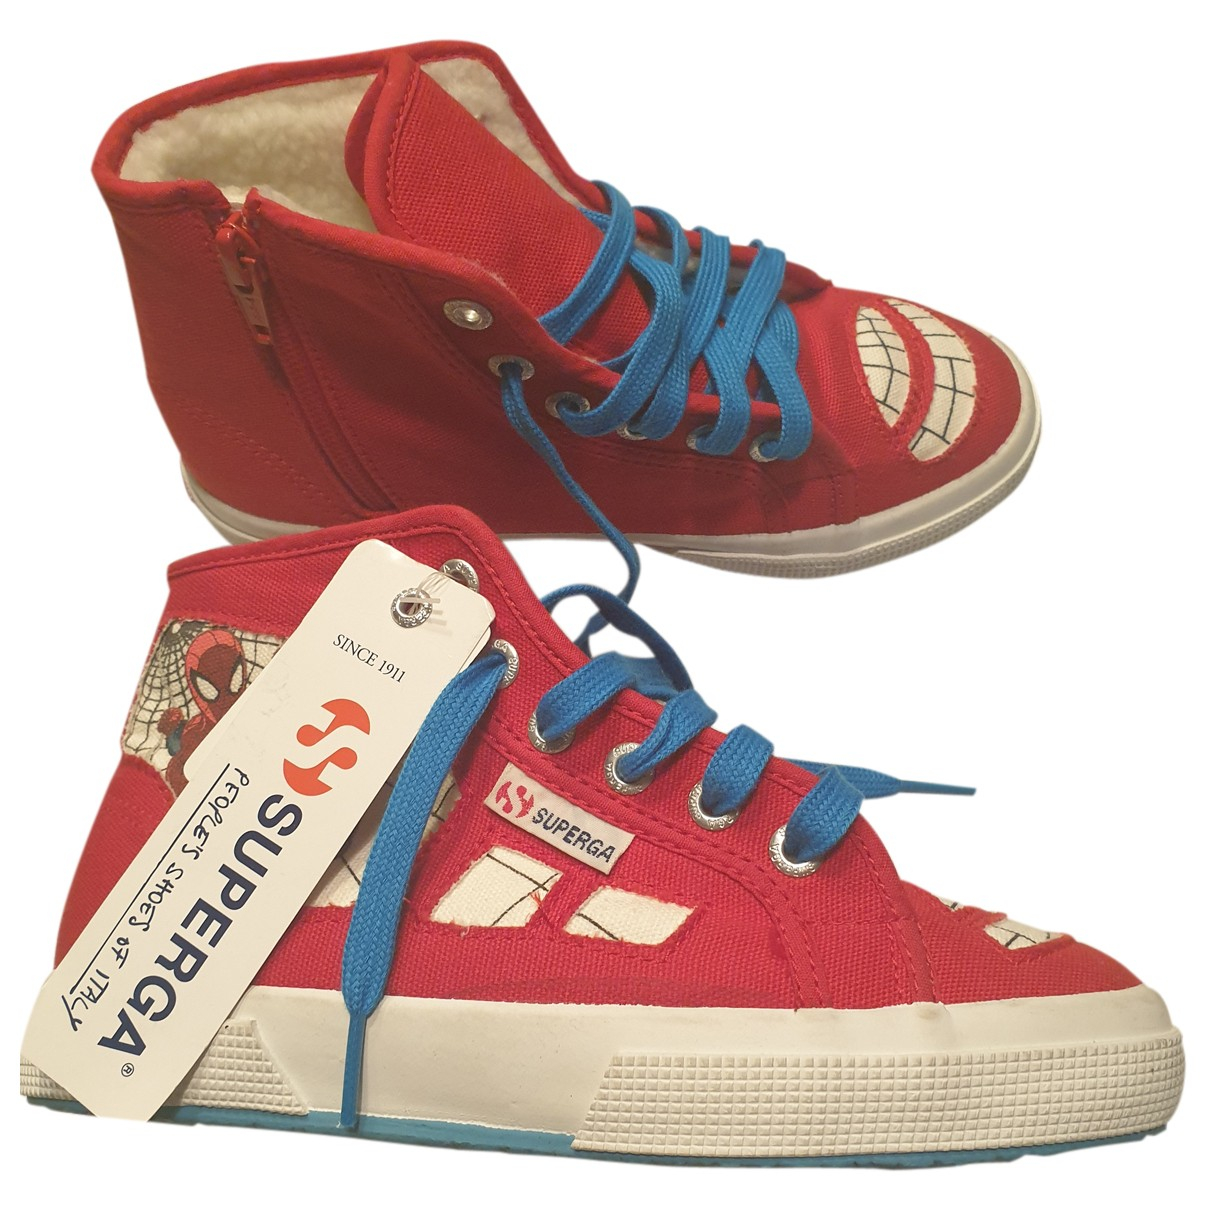 Superga N Red Cloth Trainers for Kids 2 UK